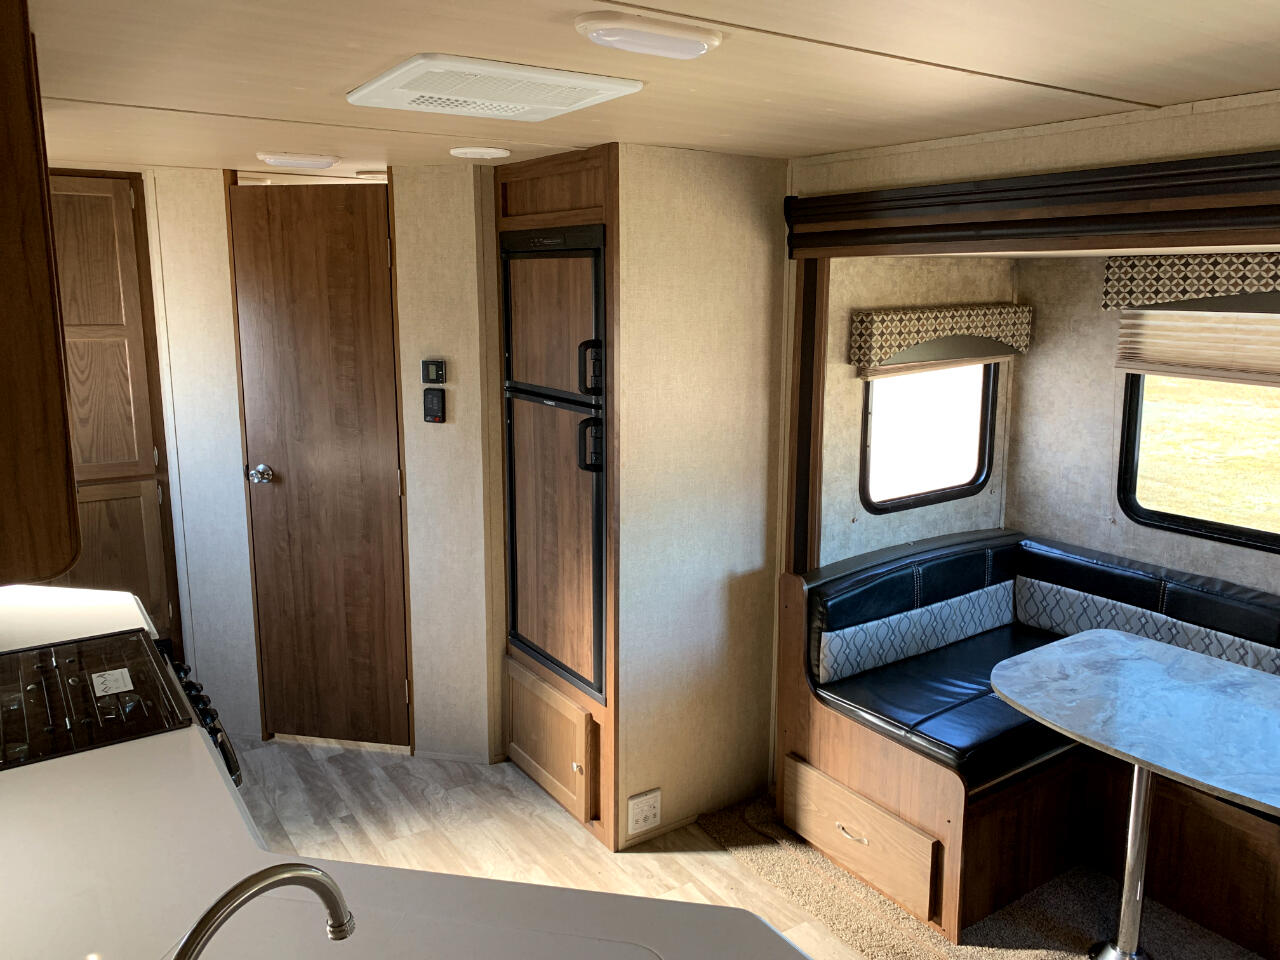 new 2018 gulf stream ultra geo for sale in conway sc 29526 conway tnt. Black Bedroom Furniture Sets. Home Design Ideas